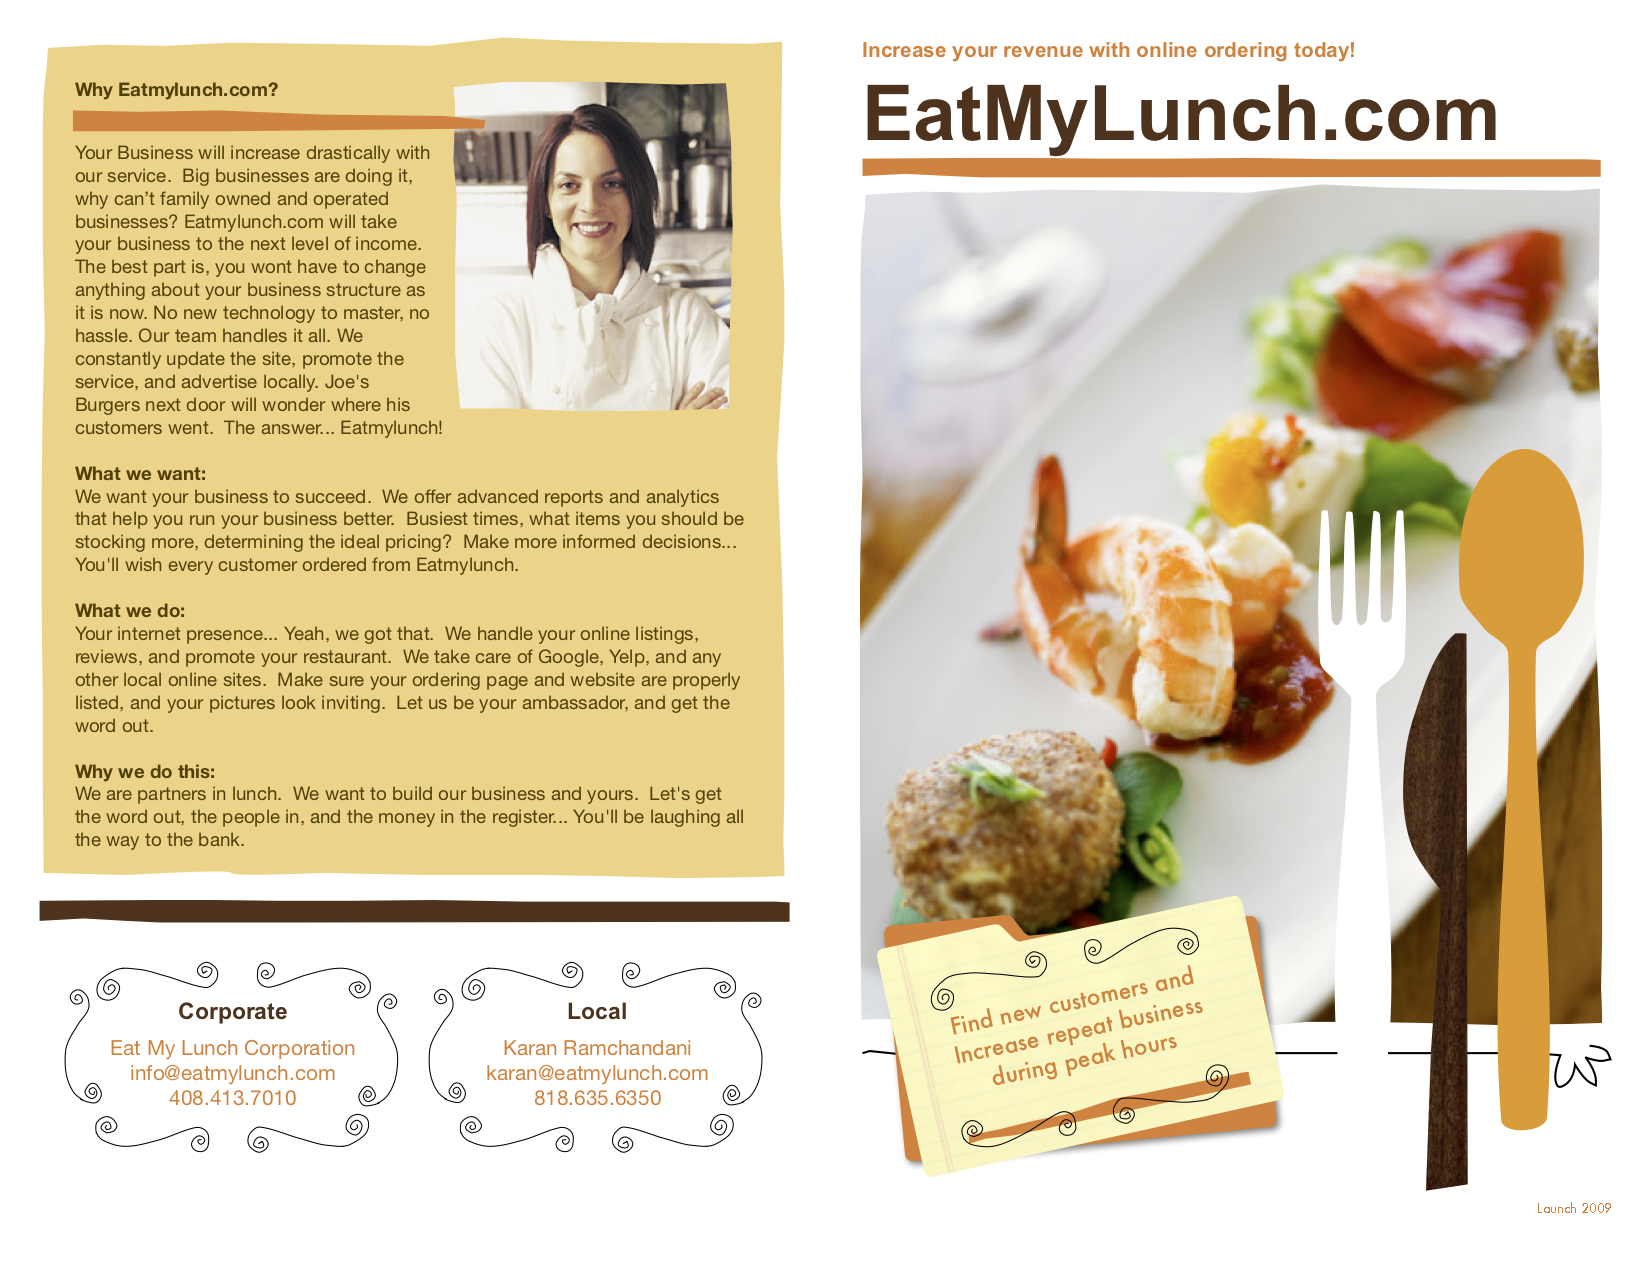 The EatMyLunch sales pitch to restaurants (2009)